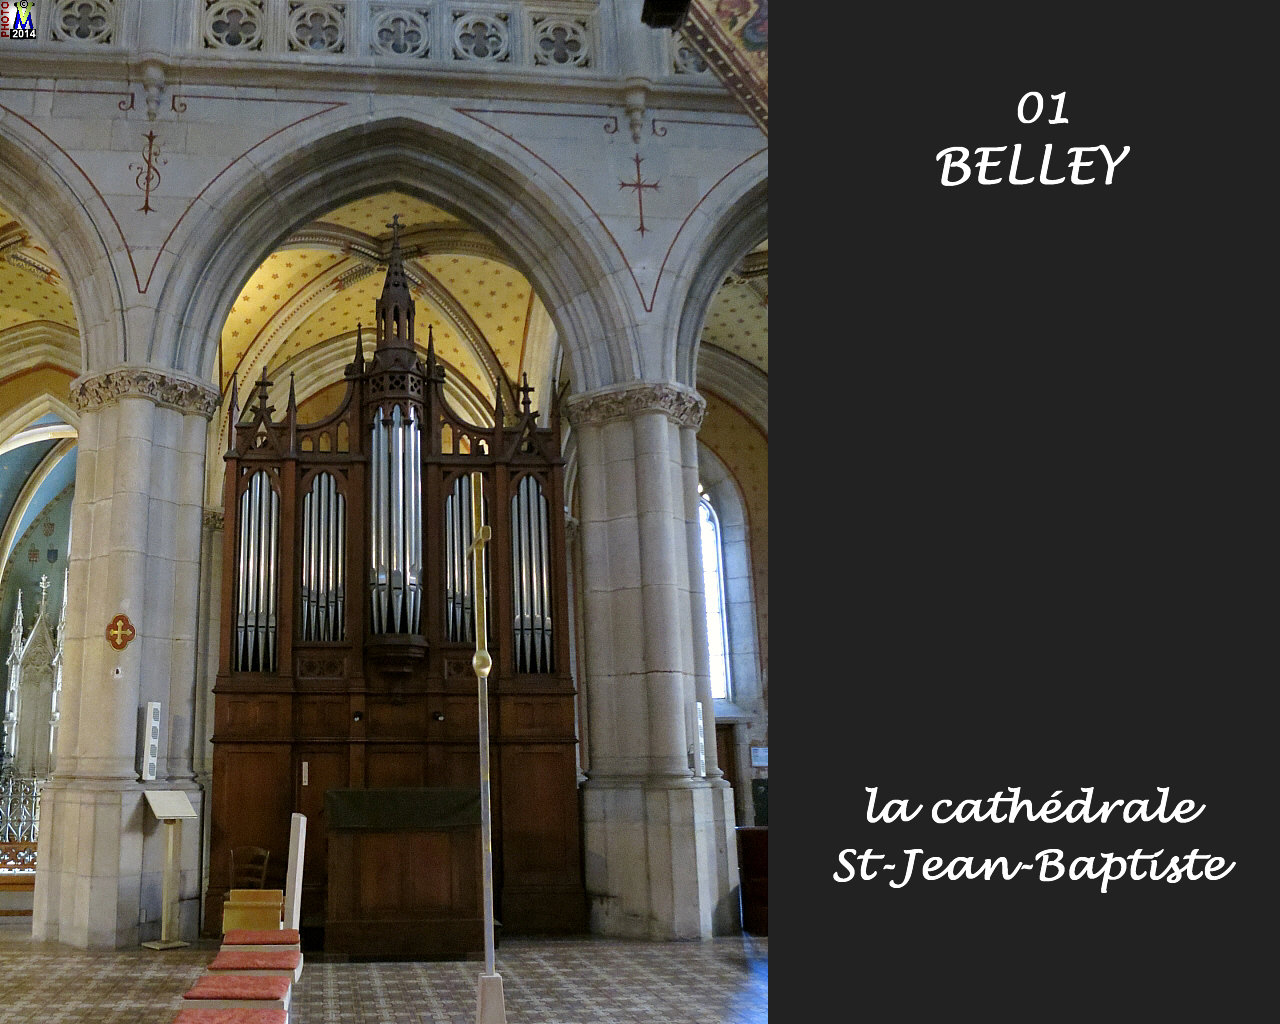 01BELLEY_cathedrale_258.jpg